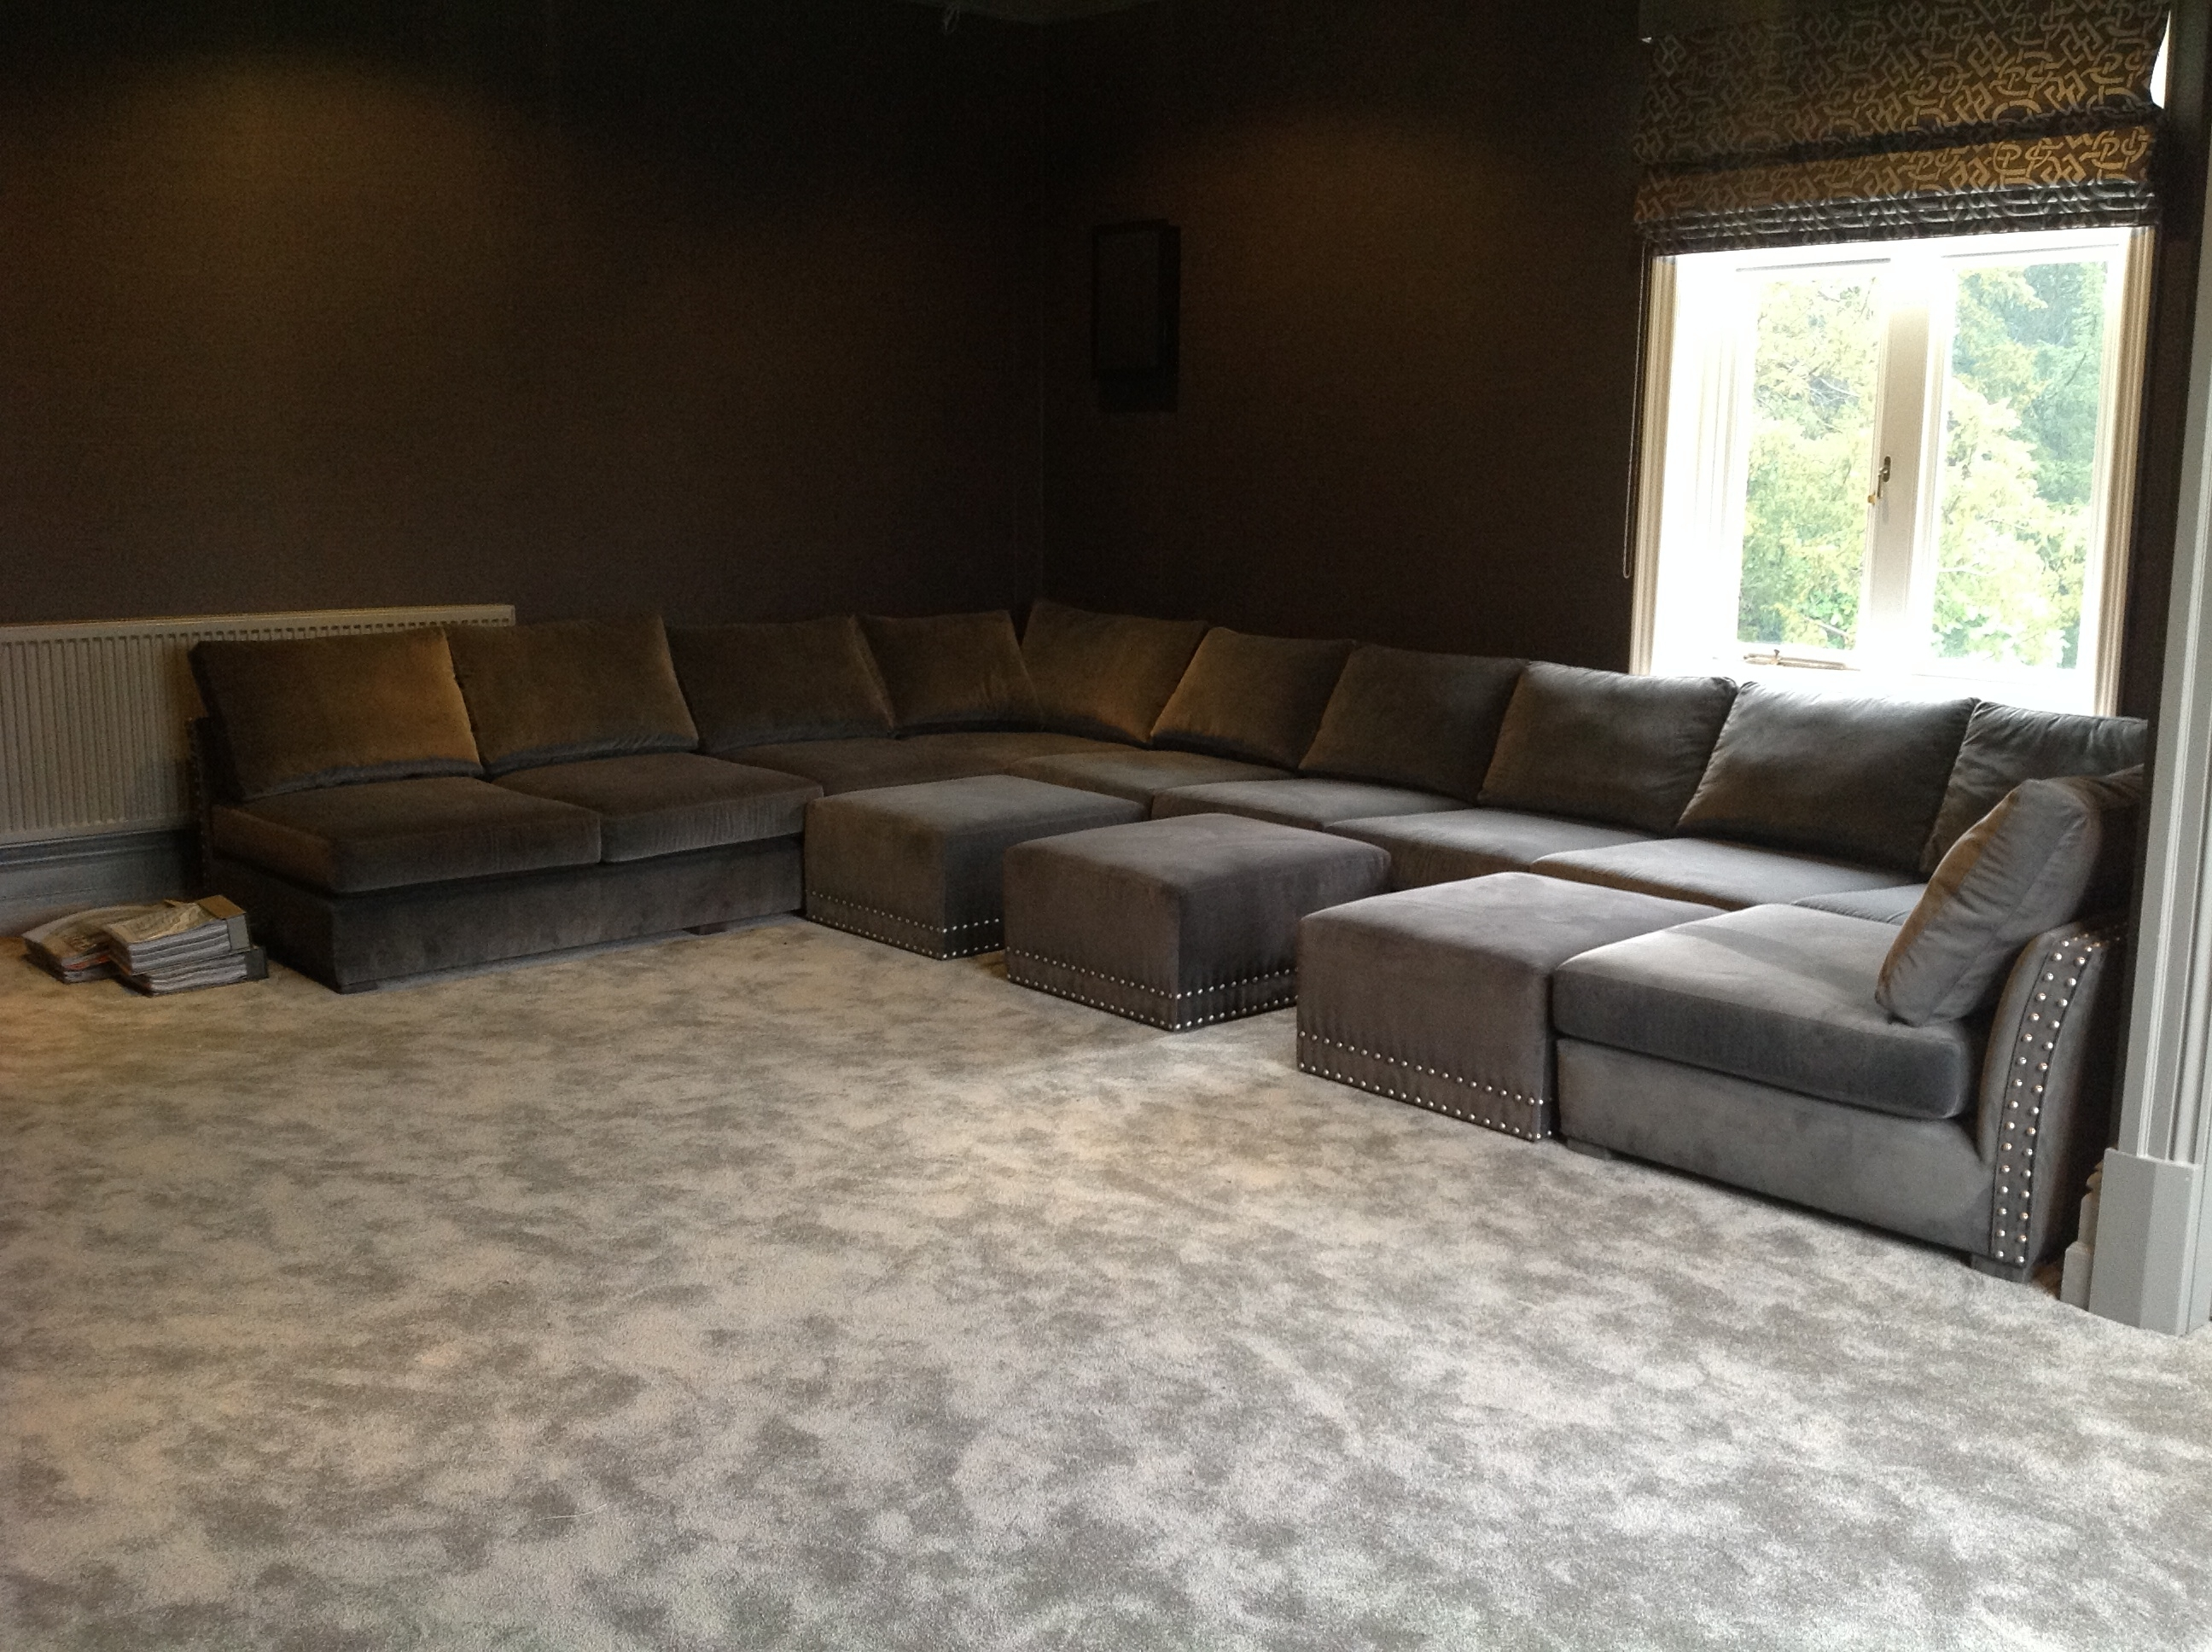 Preferred Deep U Shaped Sectionals Pertaining To Cinema U Shape Sofa – Deep And Slouchy With Wheeled Pull Up (View 13 of 20)